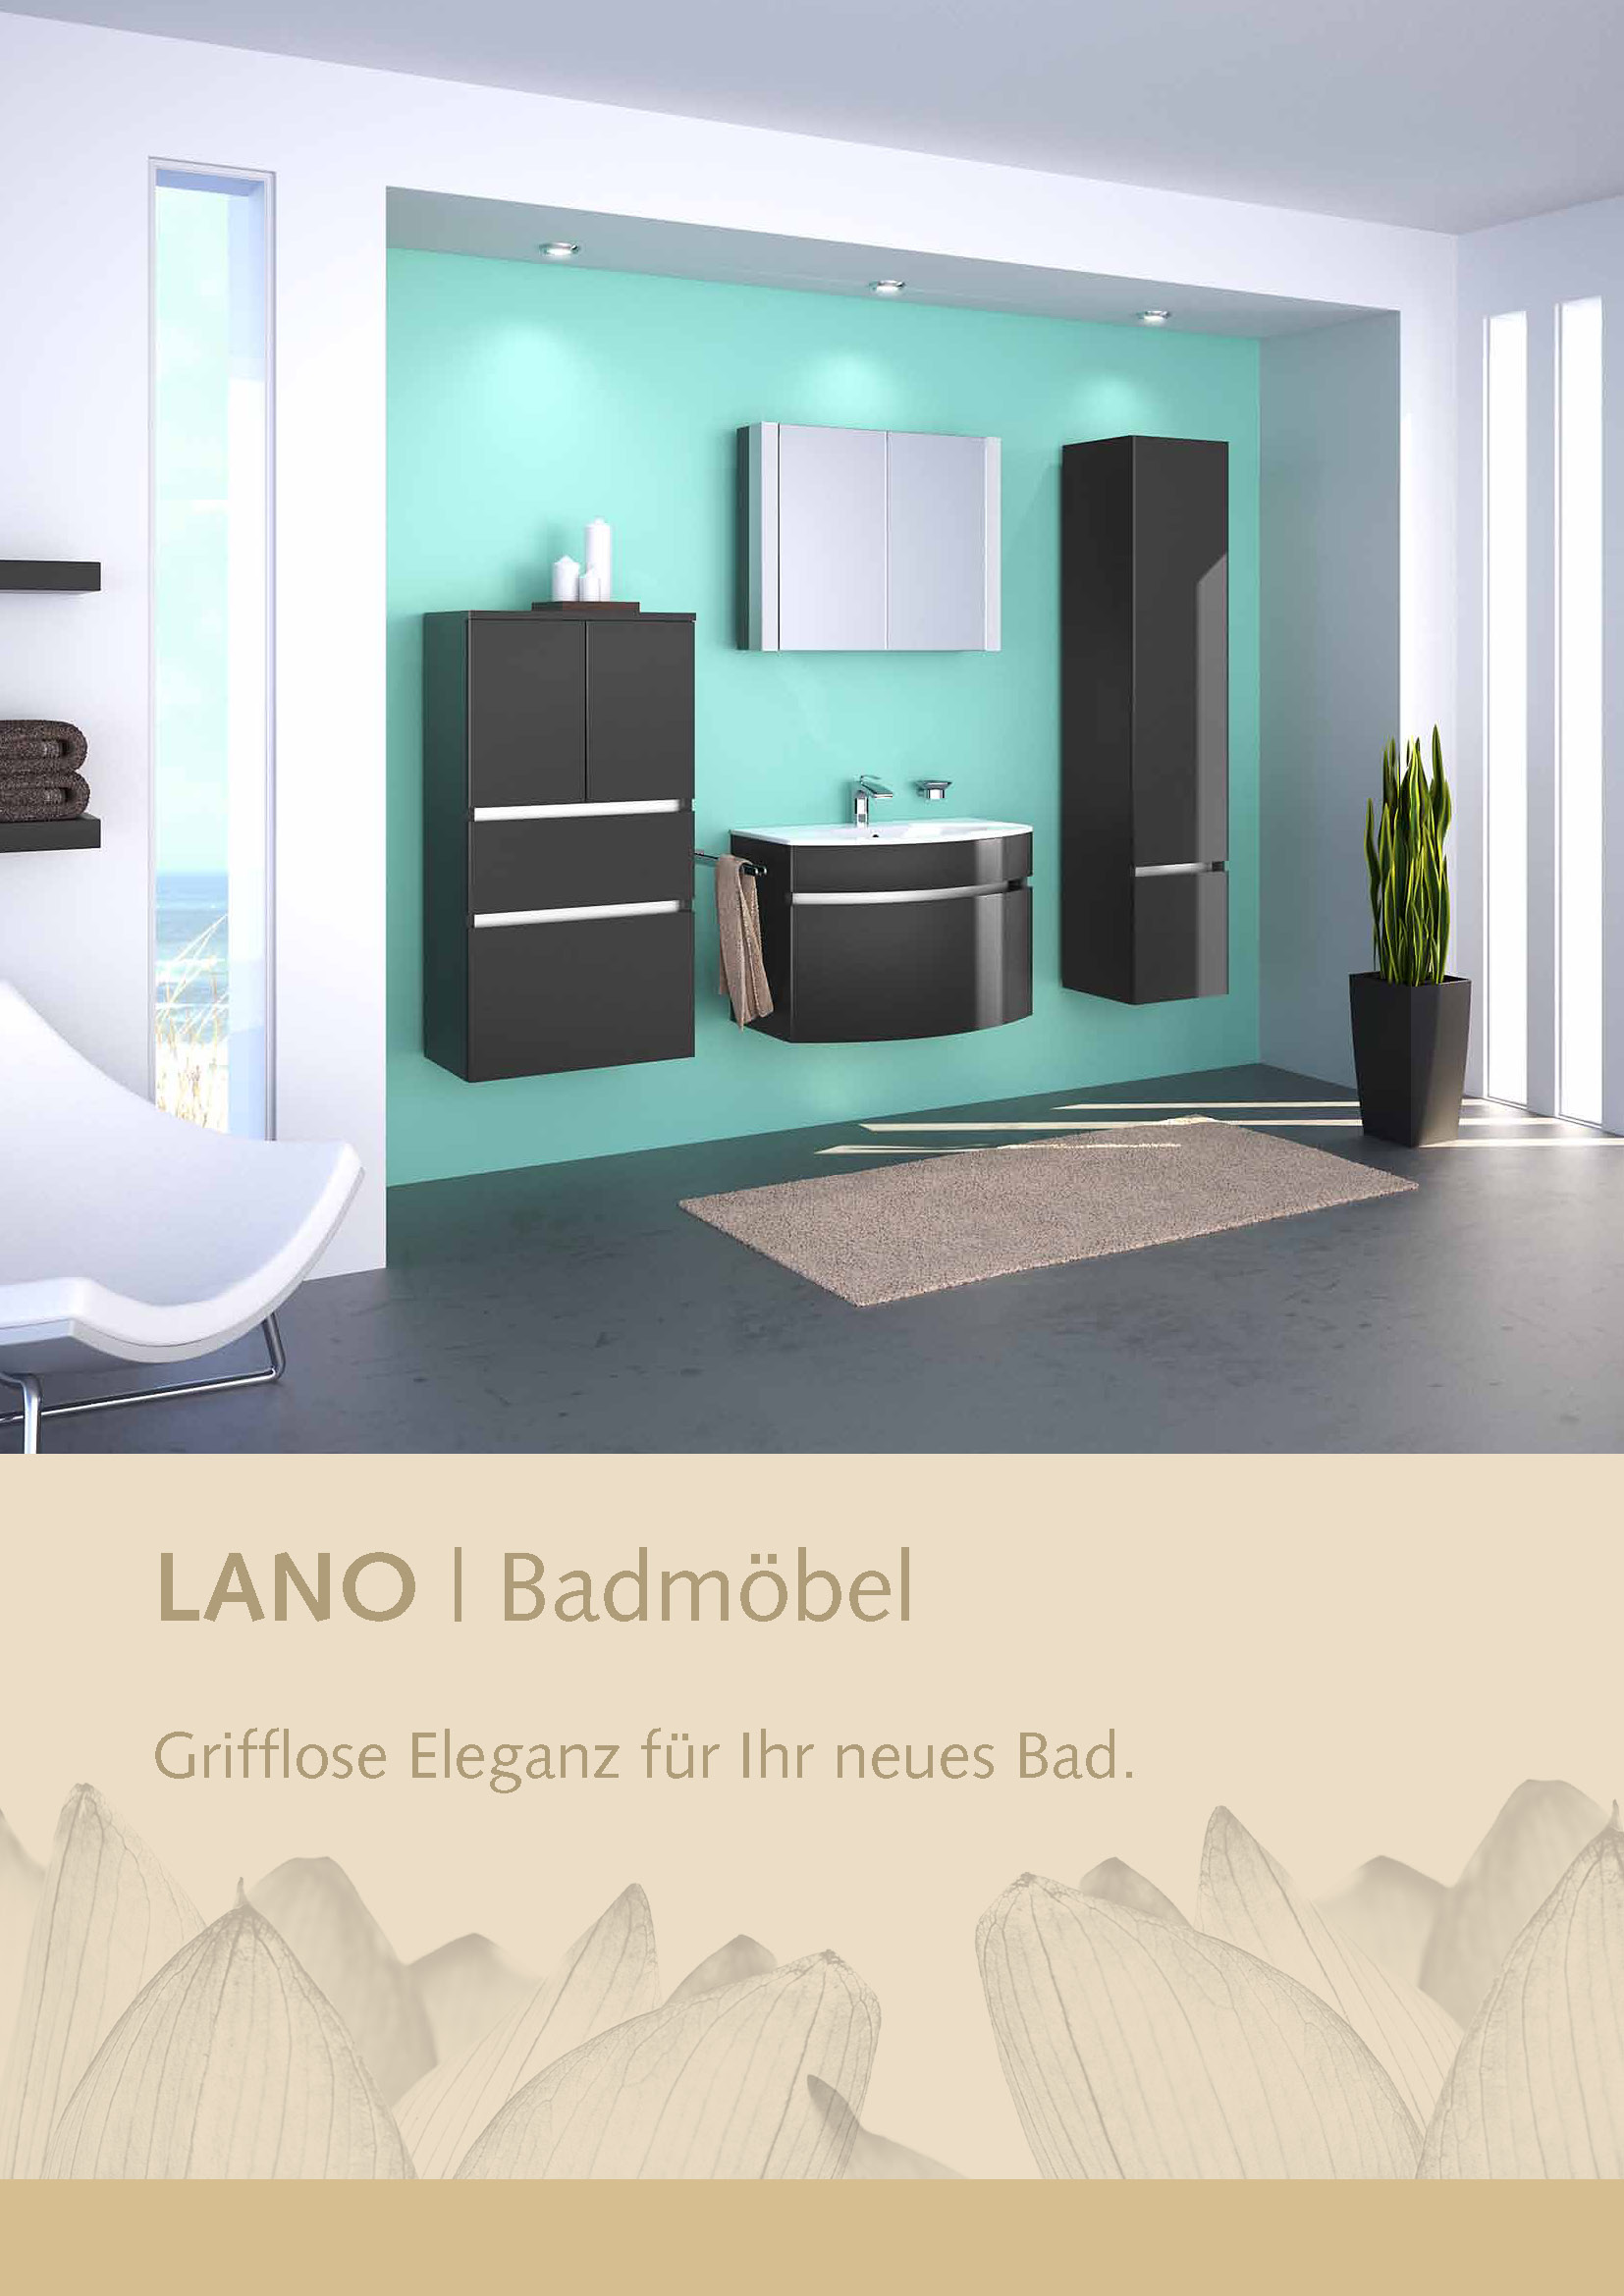 katalog lano badm bel bergmann franz. Black Bedroom Furniture Sets. Home Design Ideas